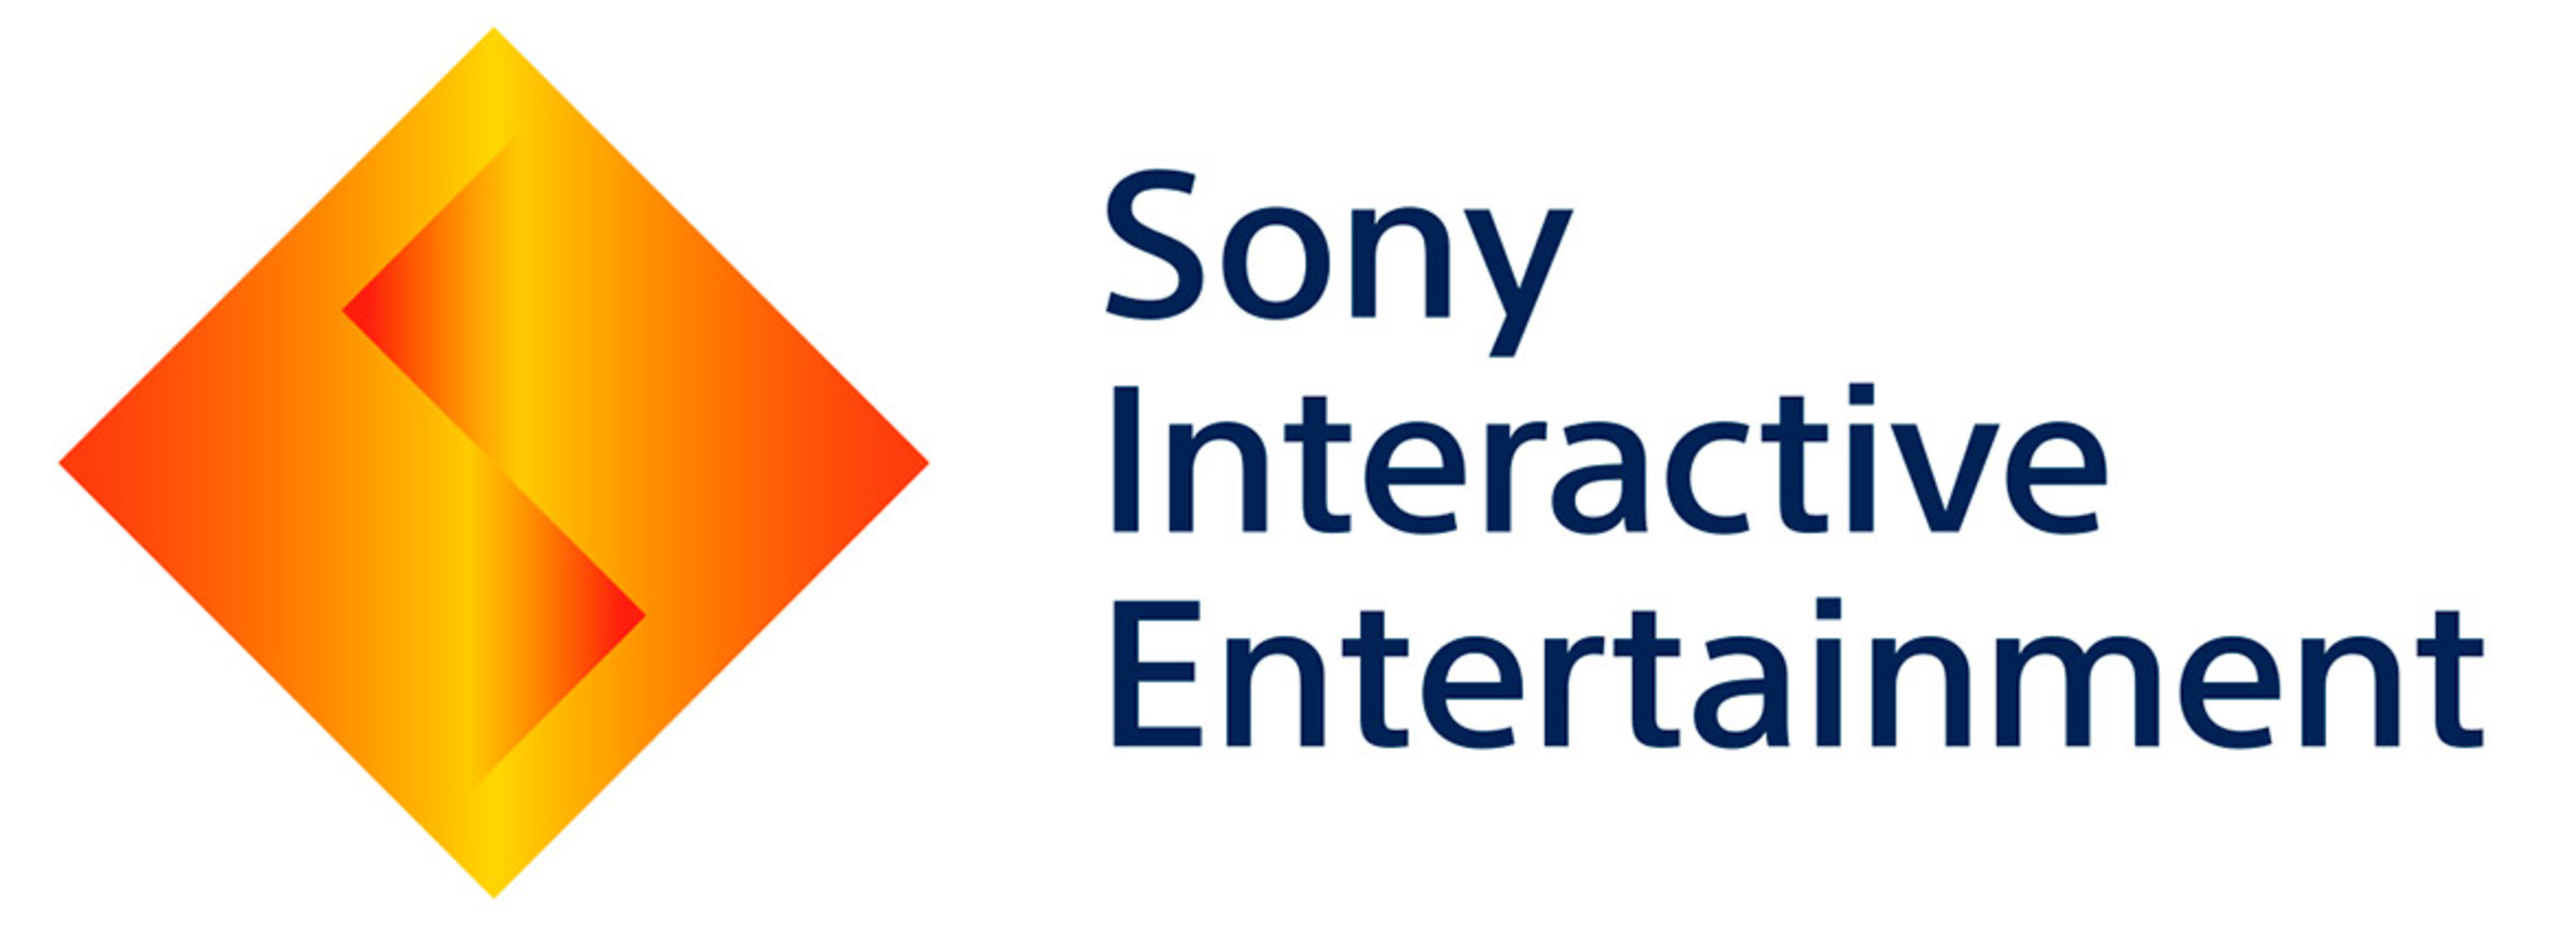 Sony Computer Entertainment corporate logo.